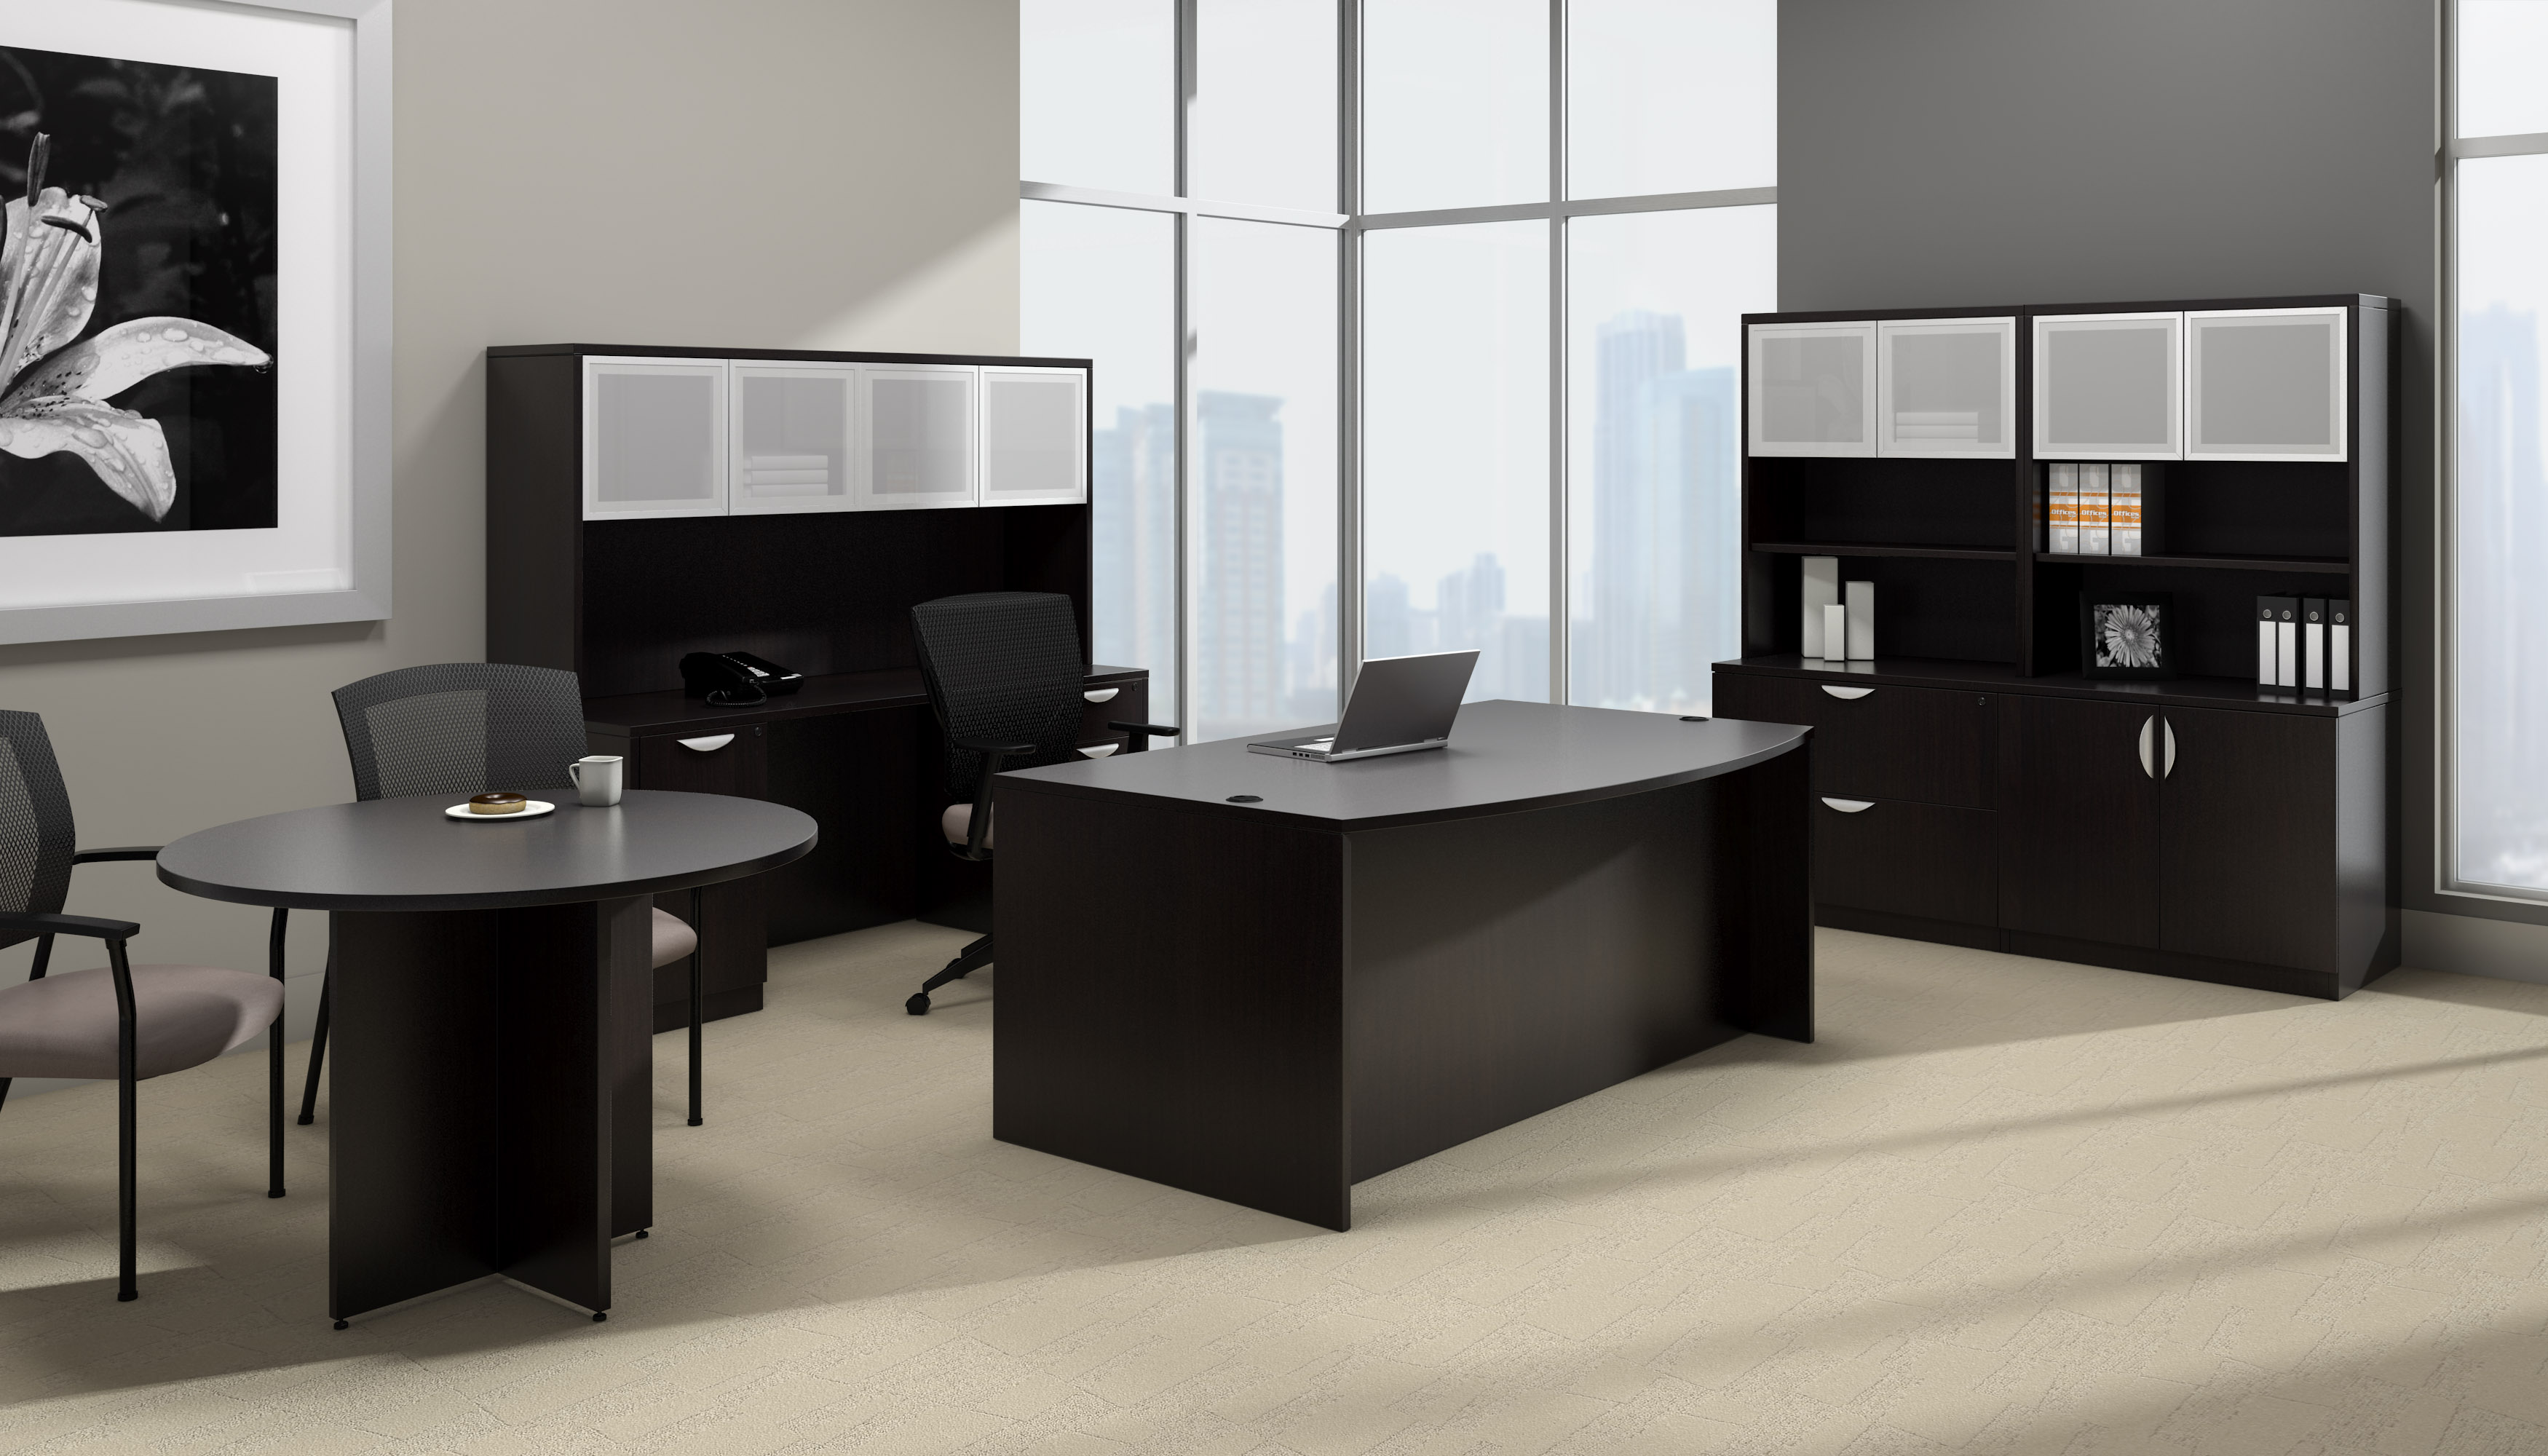 offices to go superior laminate complete executive furniture set with espresso finish